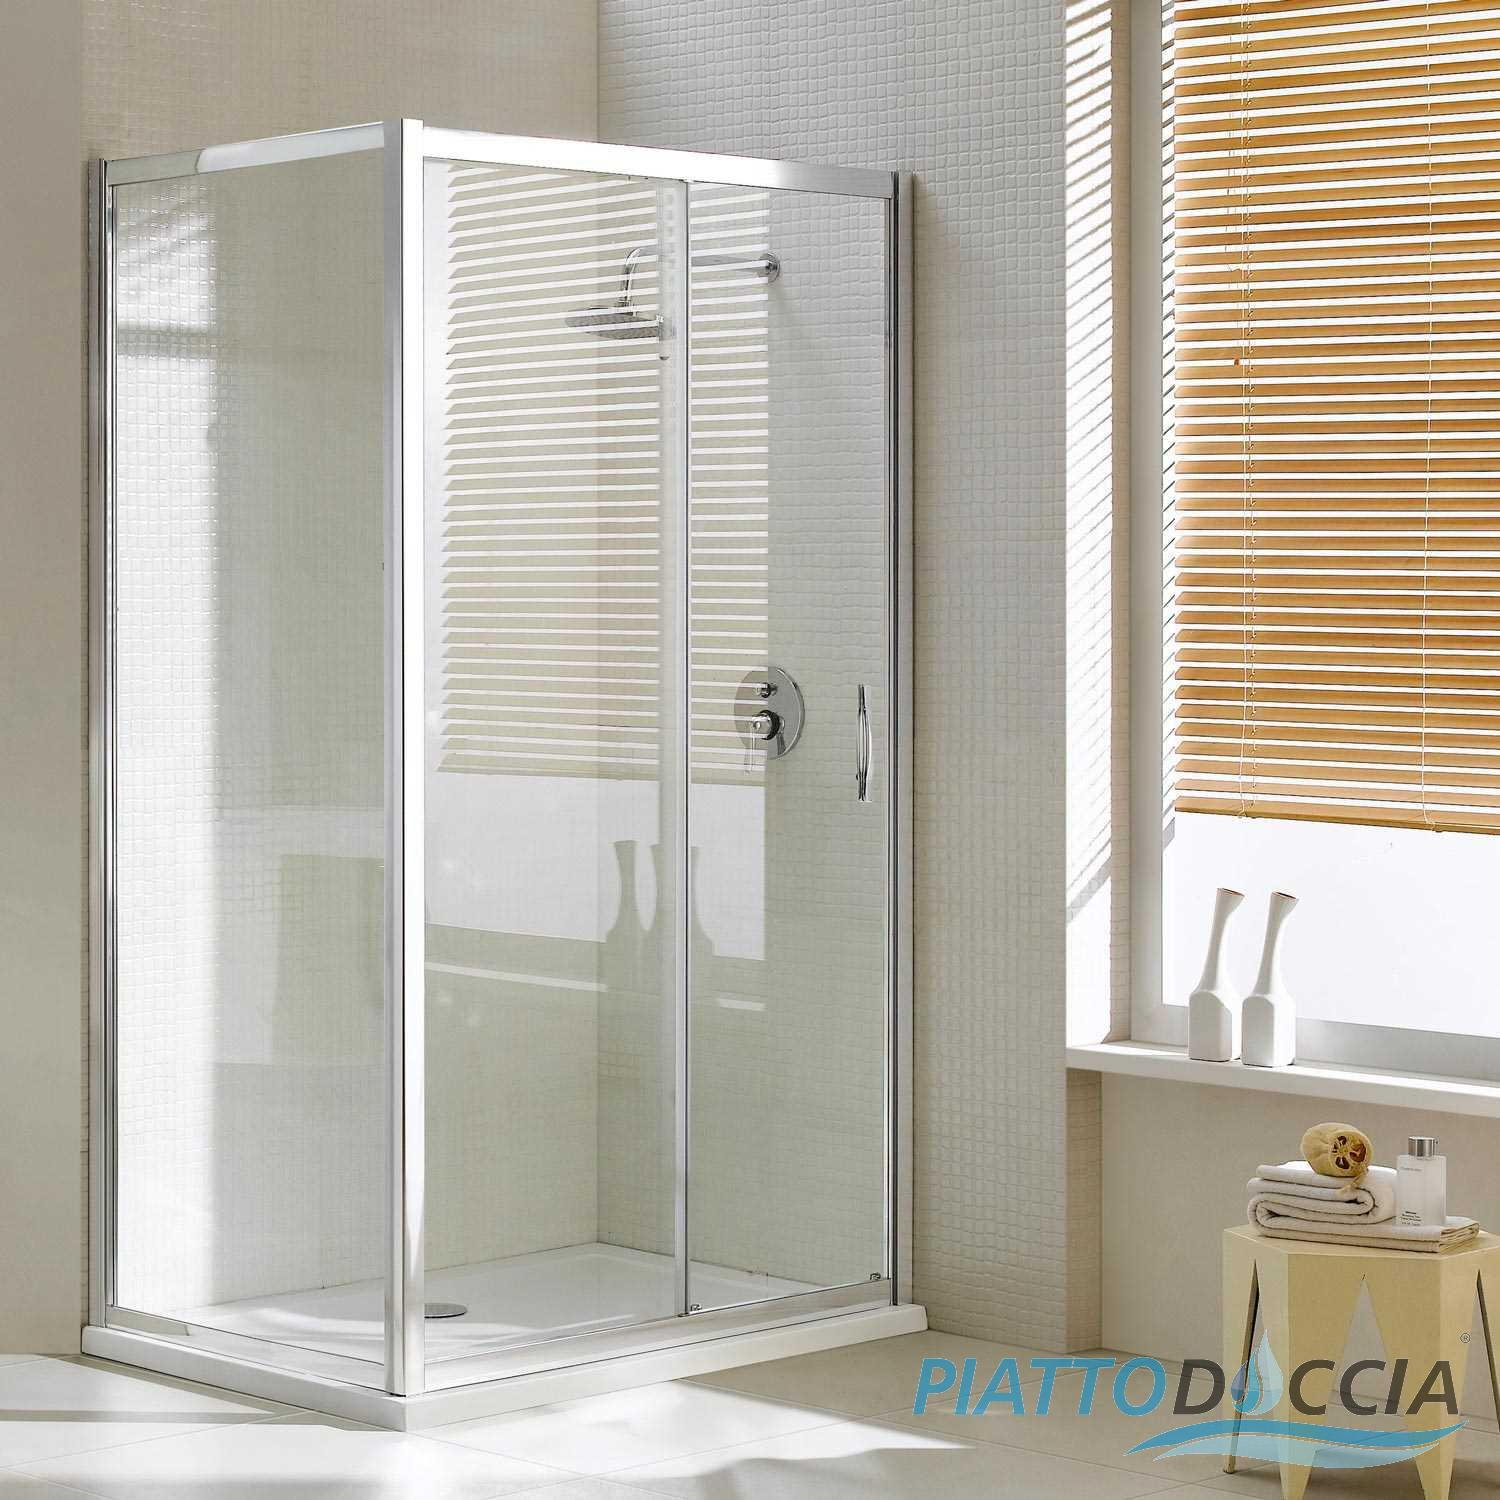 paroi cabine de douche angulaire ouverture 1 verre coulissante carr italienne ebay. Black Bedroom Furniture Sets. Home Design Ideas